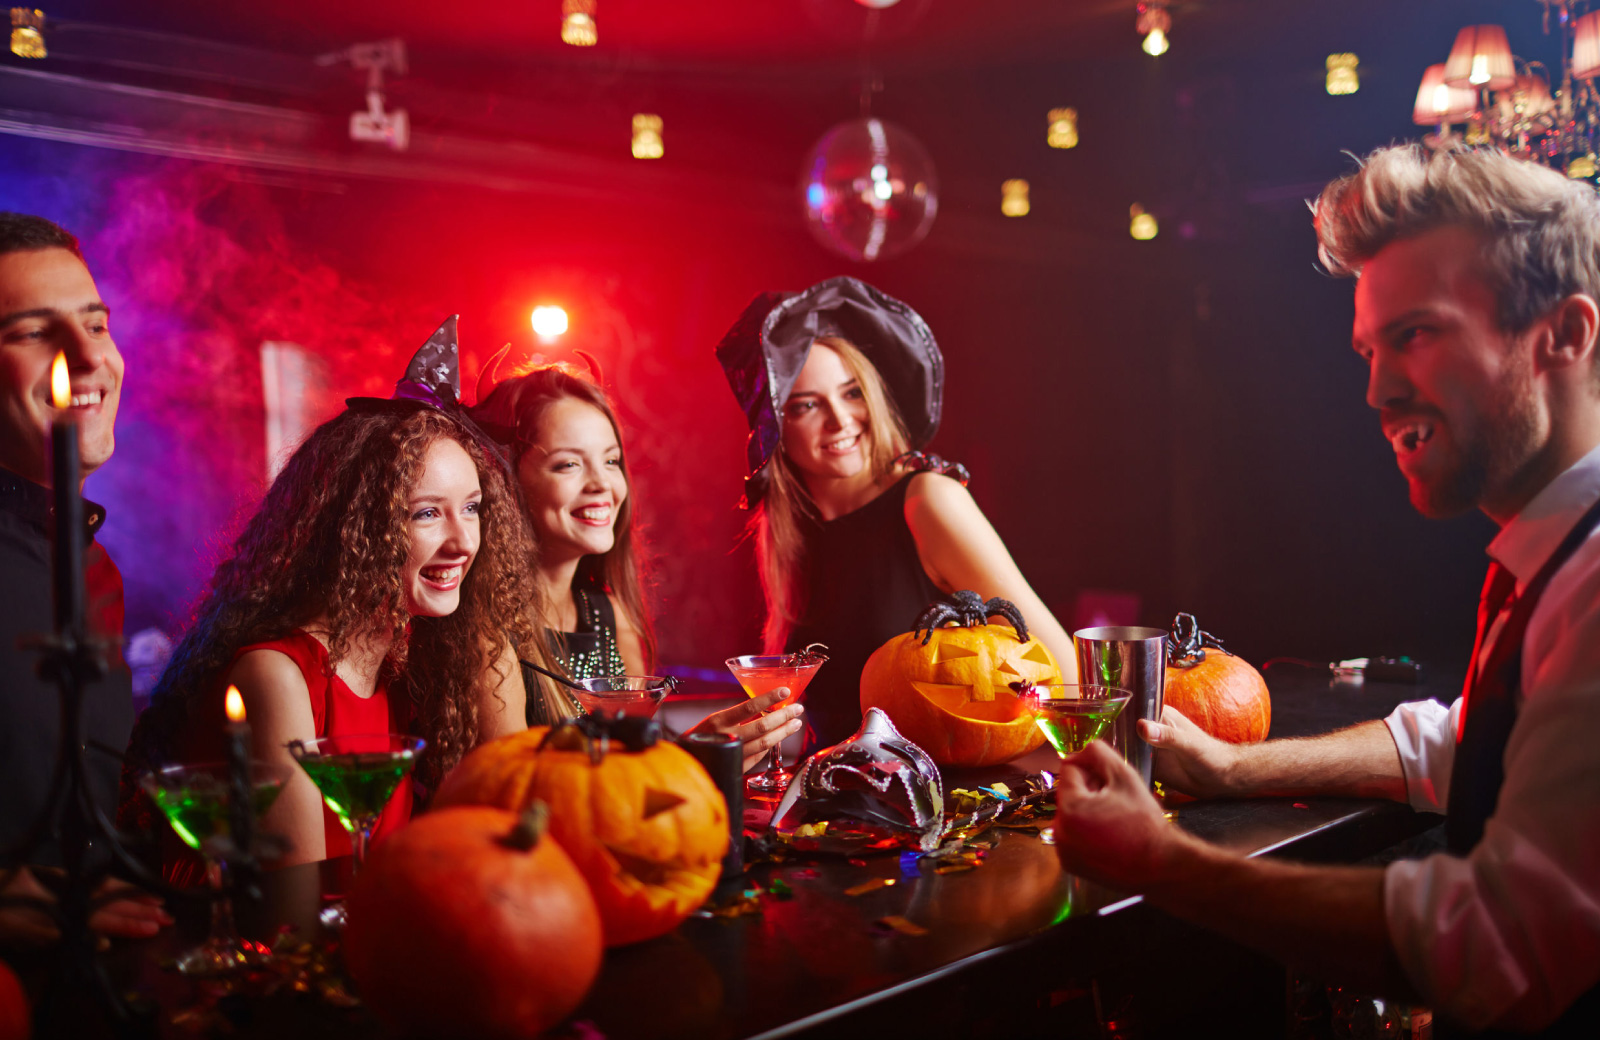 group of girls partying at a bar during halloween colab denver